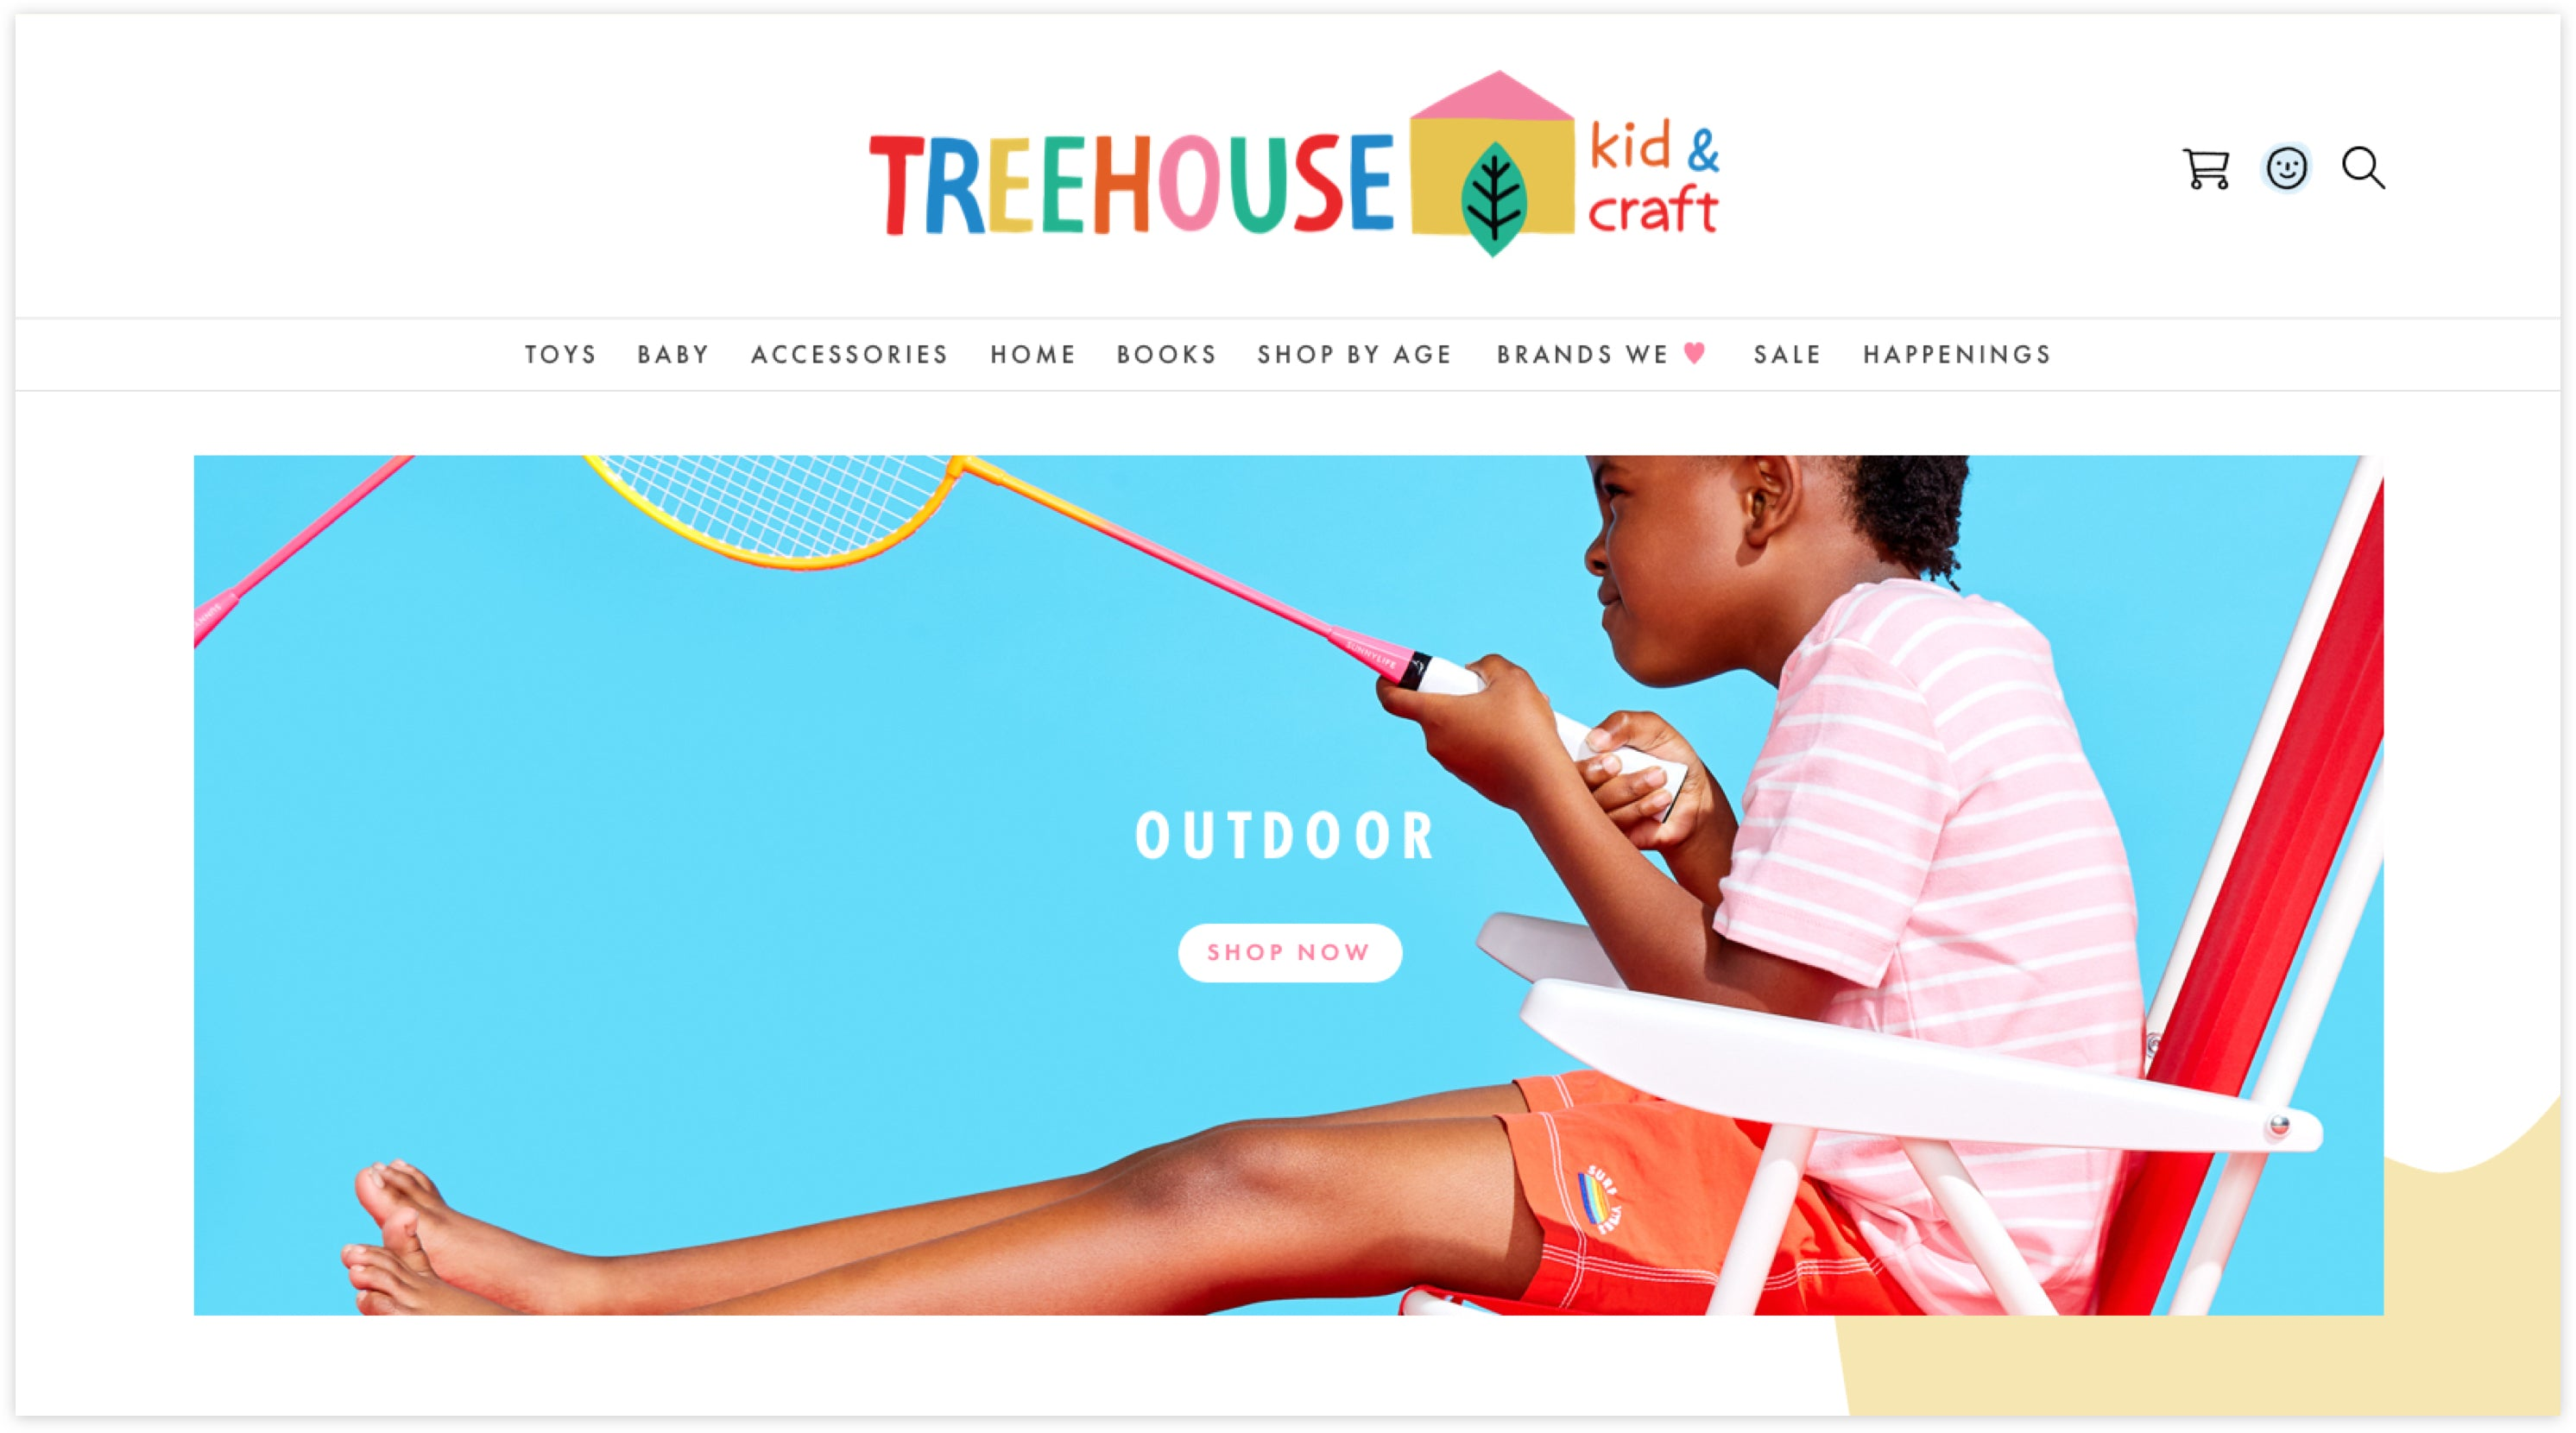 TREEHOUSE kid & craft homepage, Custom Shopify Site, Playful and Whimsical